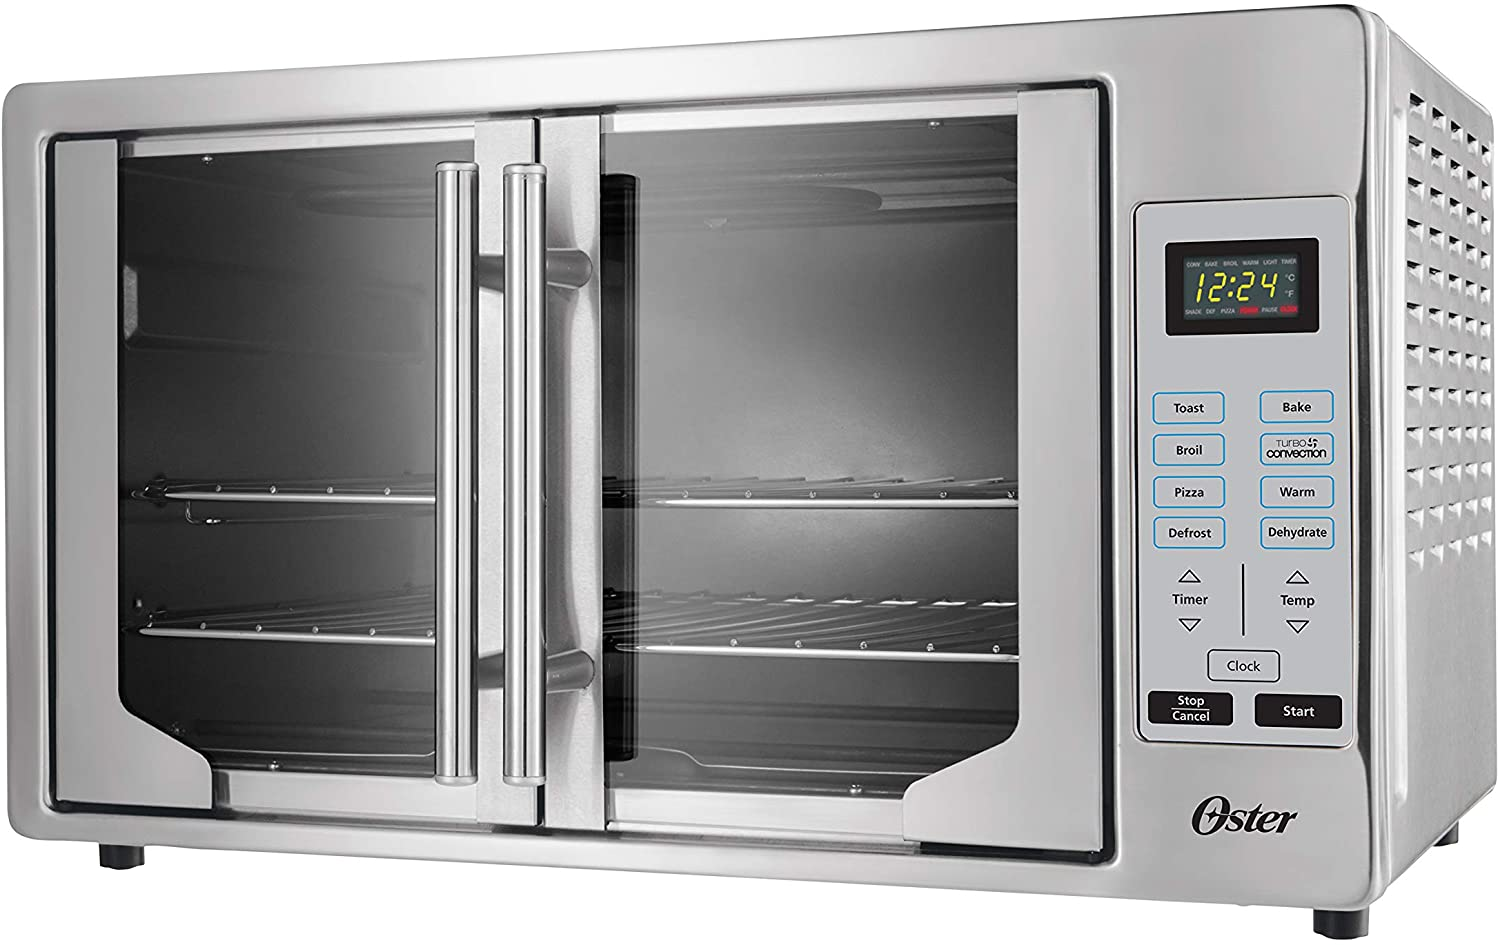 Oster French Door Convection Countertop  Oven Only $149.99 {Was $249.99}